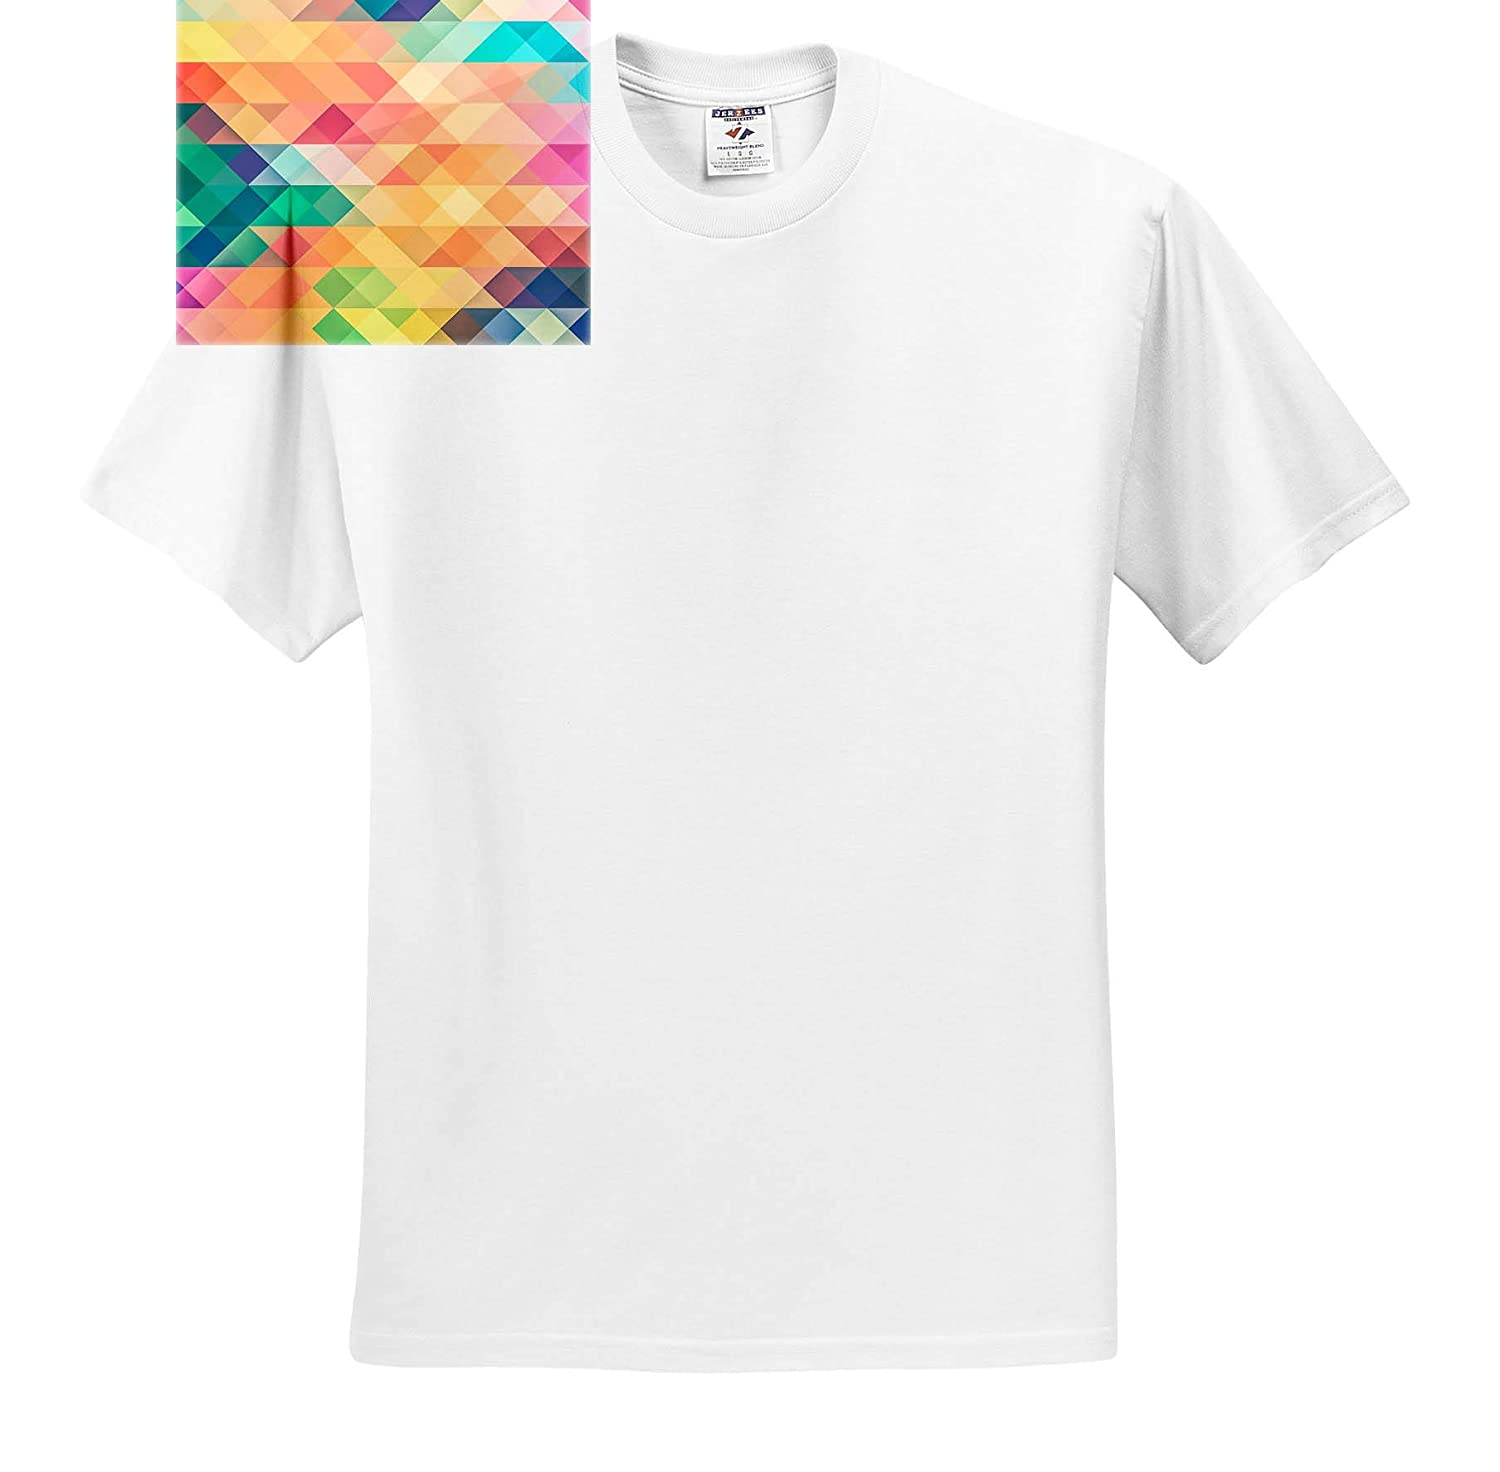 T-Shirts Image of Small Triangles in Aqua Pink and Yellow 3dRose Lens Art by Florene Digital Painting